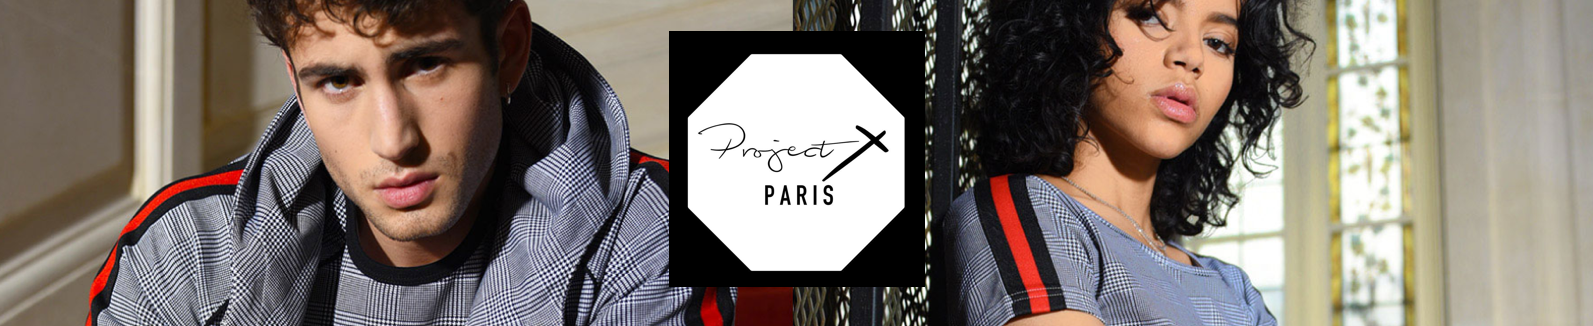 ProjectX Paris